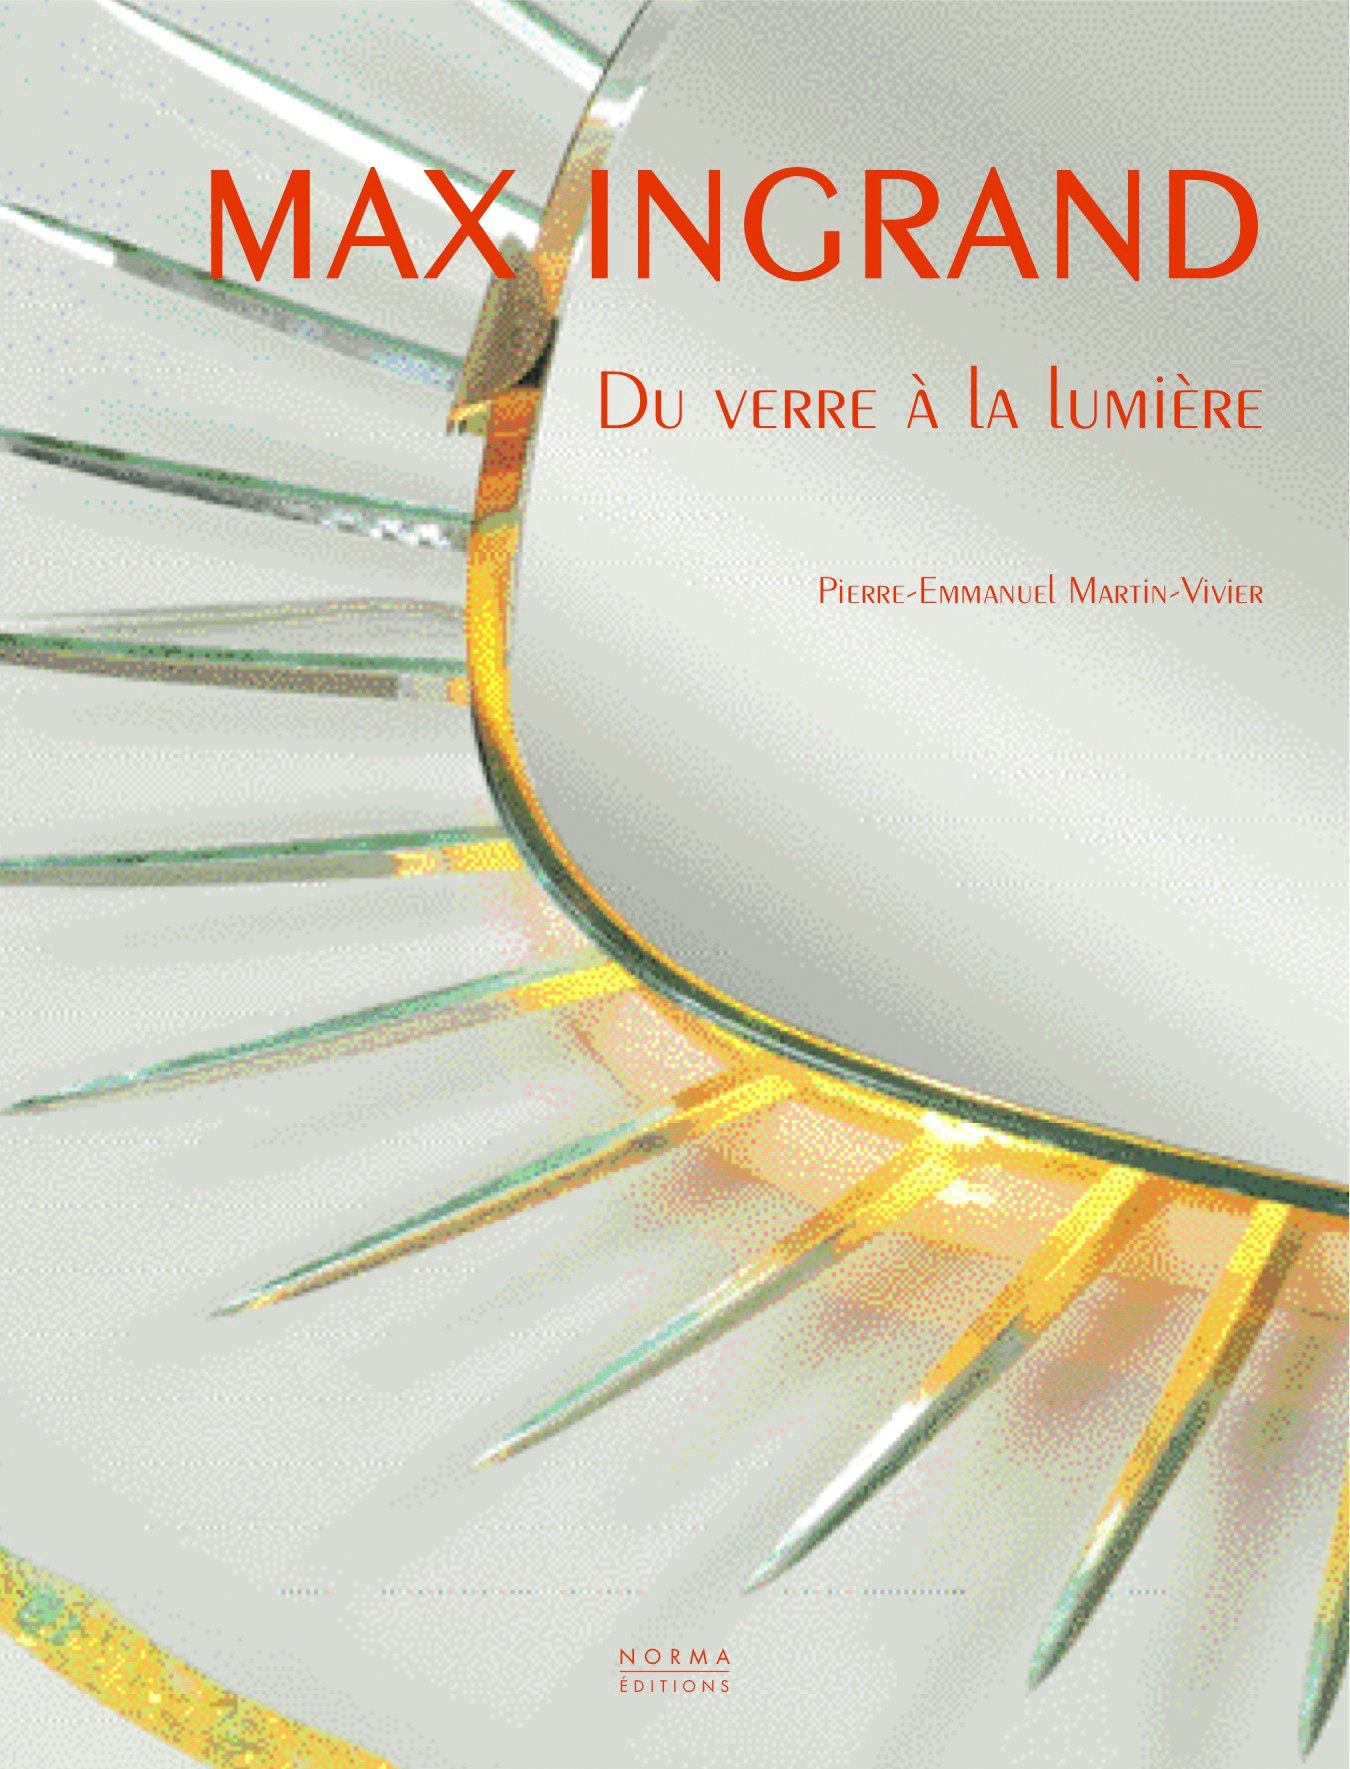 Max Ingrand (French Edition)